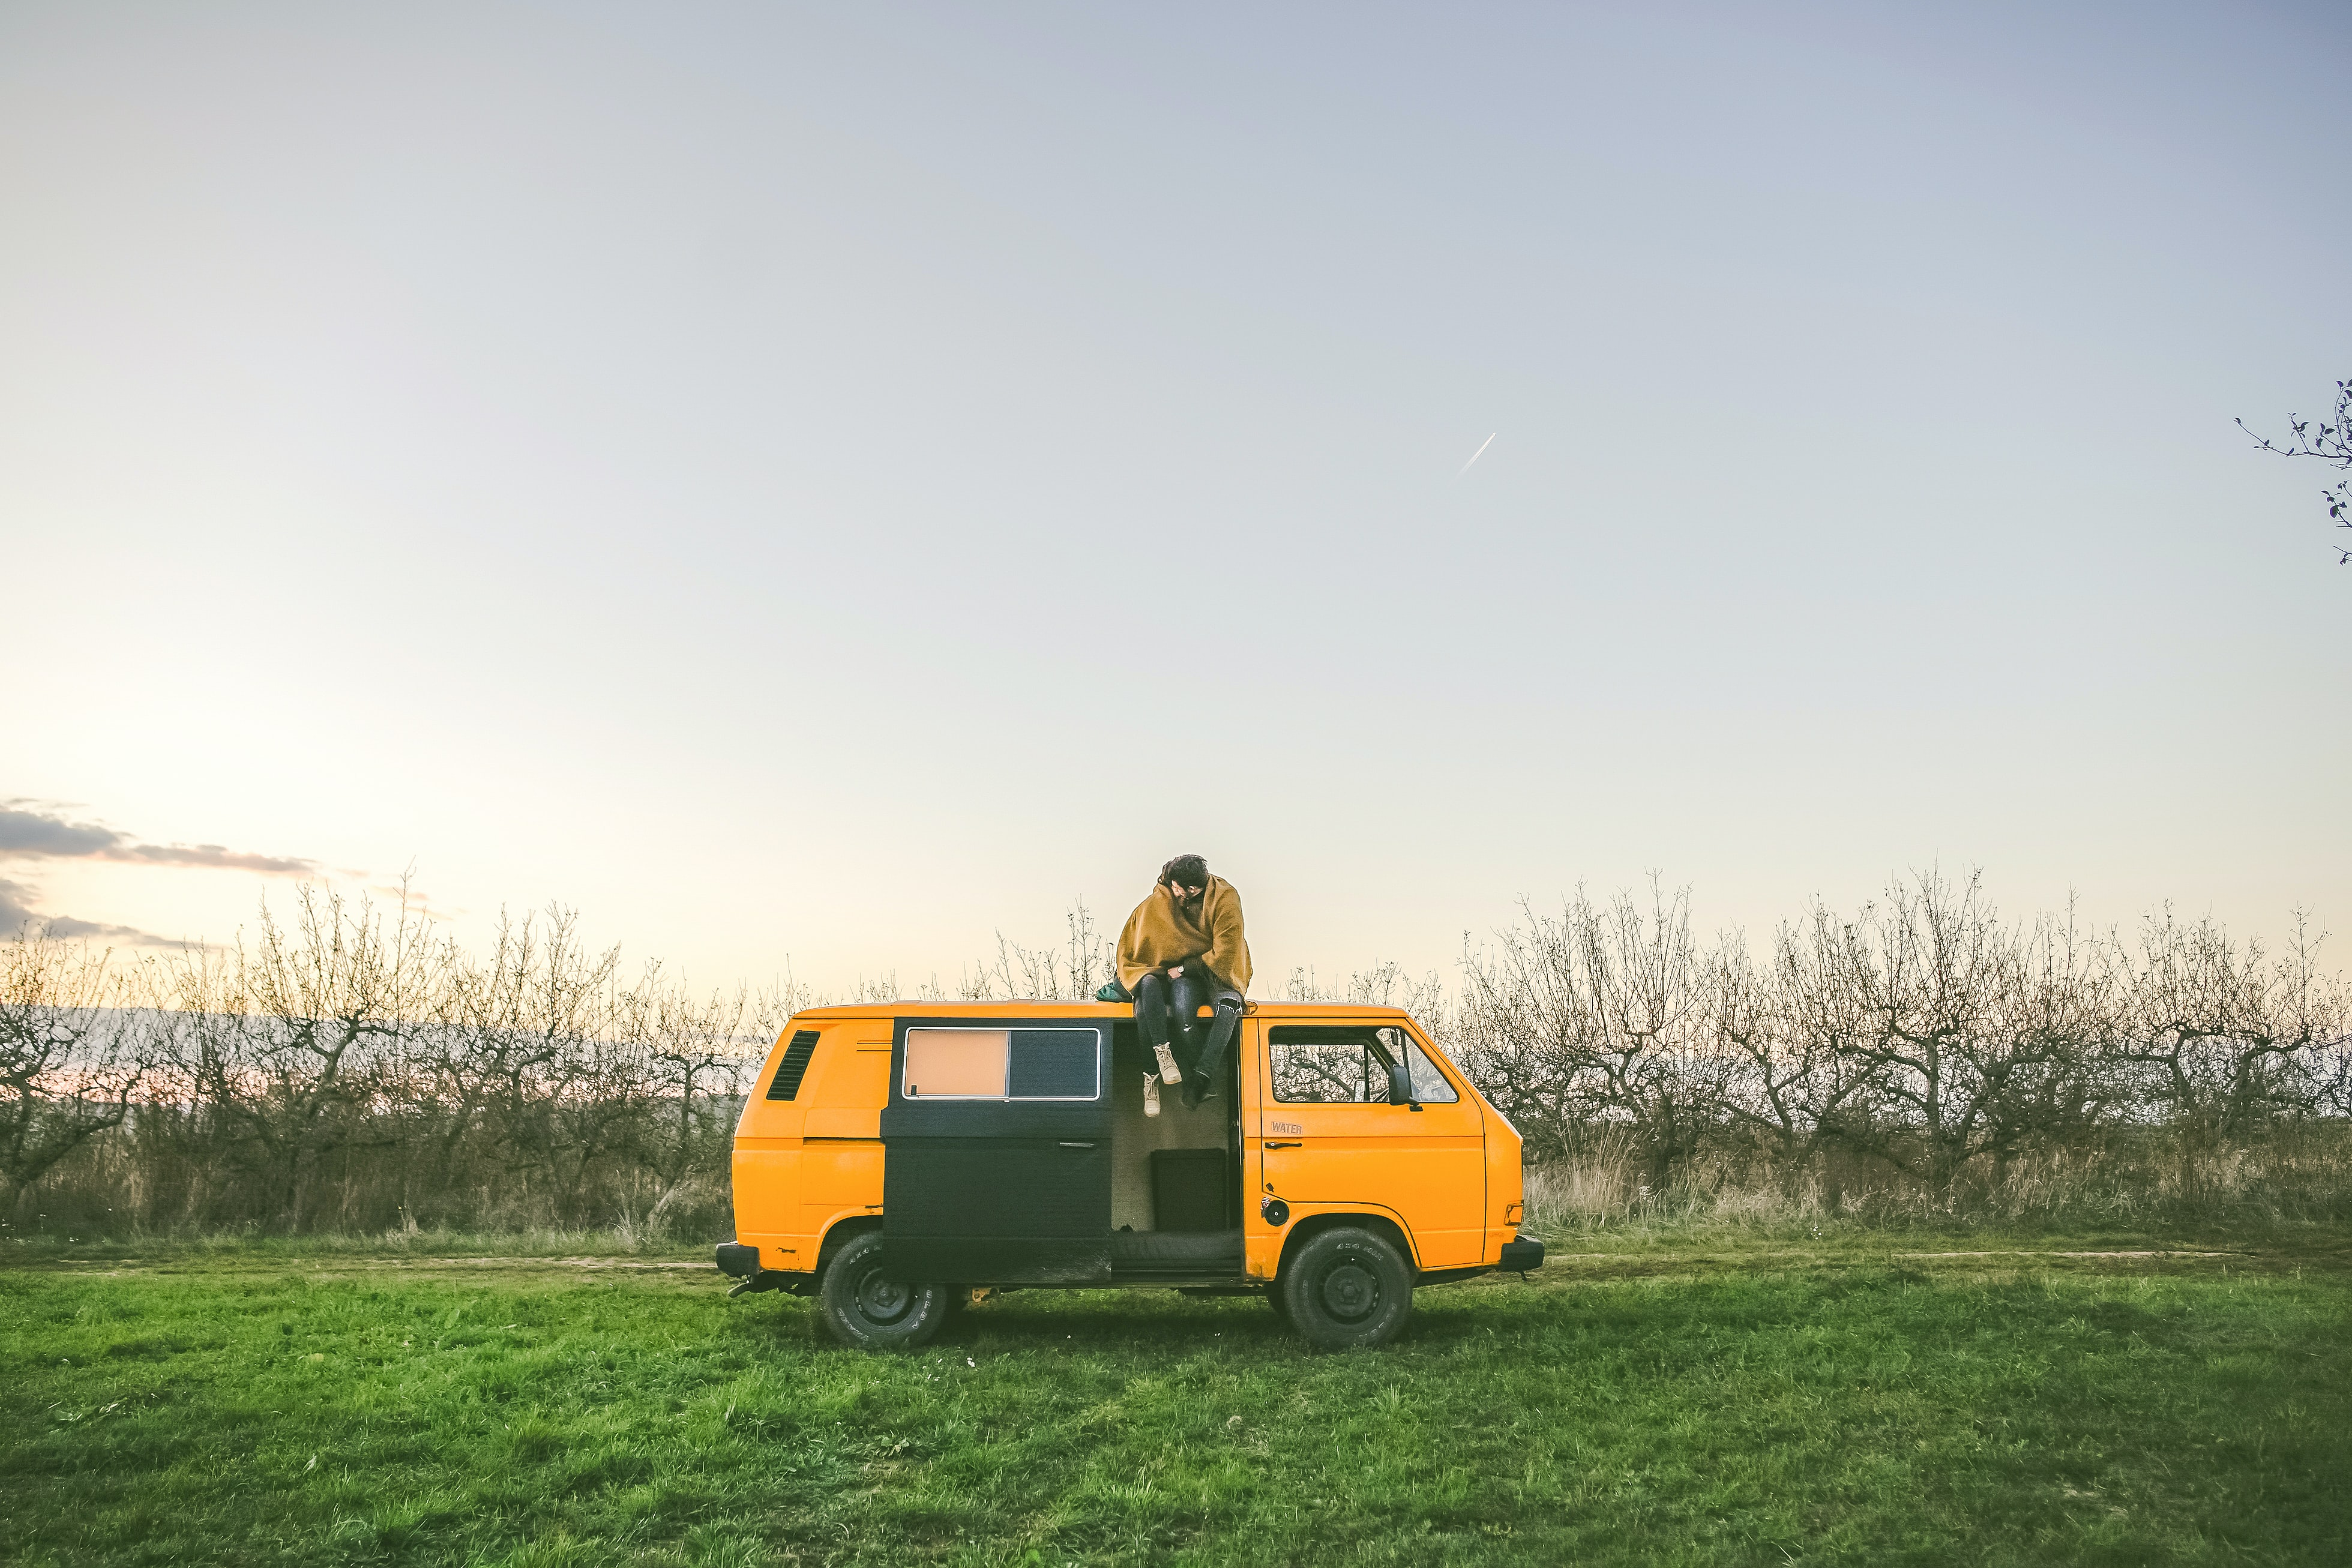 person sitting on top of yellow van on grass field during day